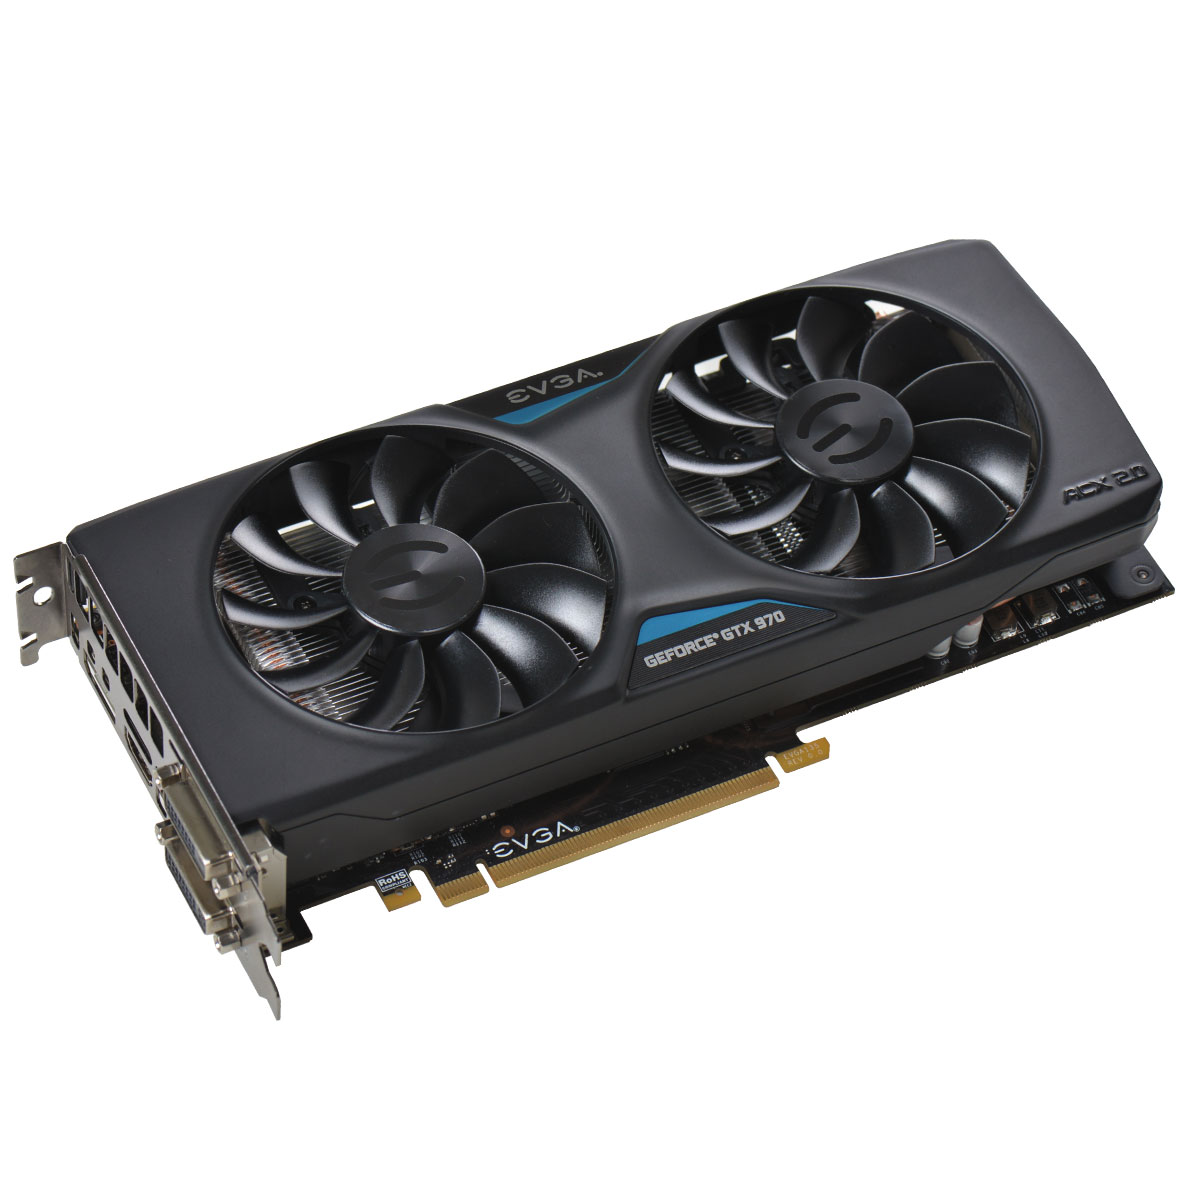 EVGA 04G-P4-2974 KR GeForce GTX 970 4GB 256-Bit GDDR5 PCI Express 3.0 SLI Support Video Card